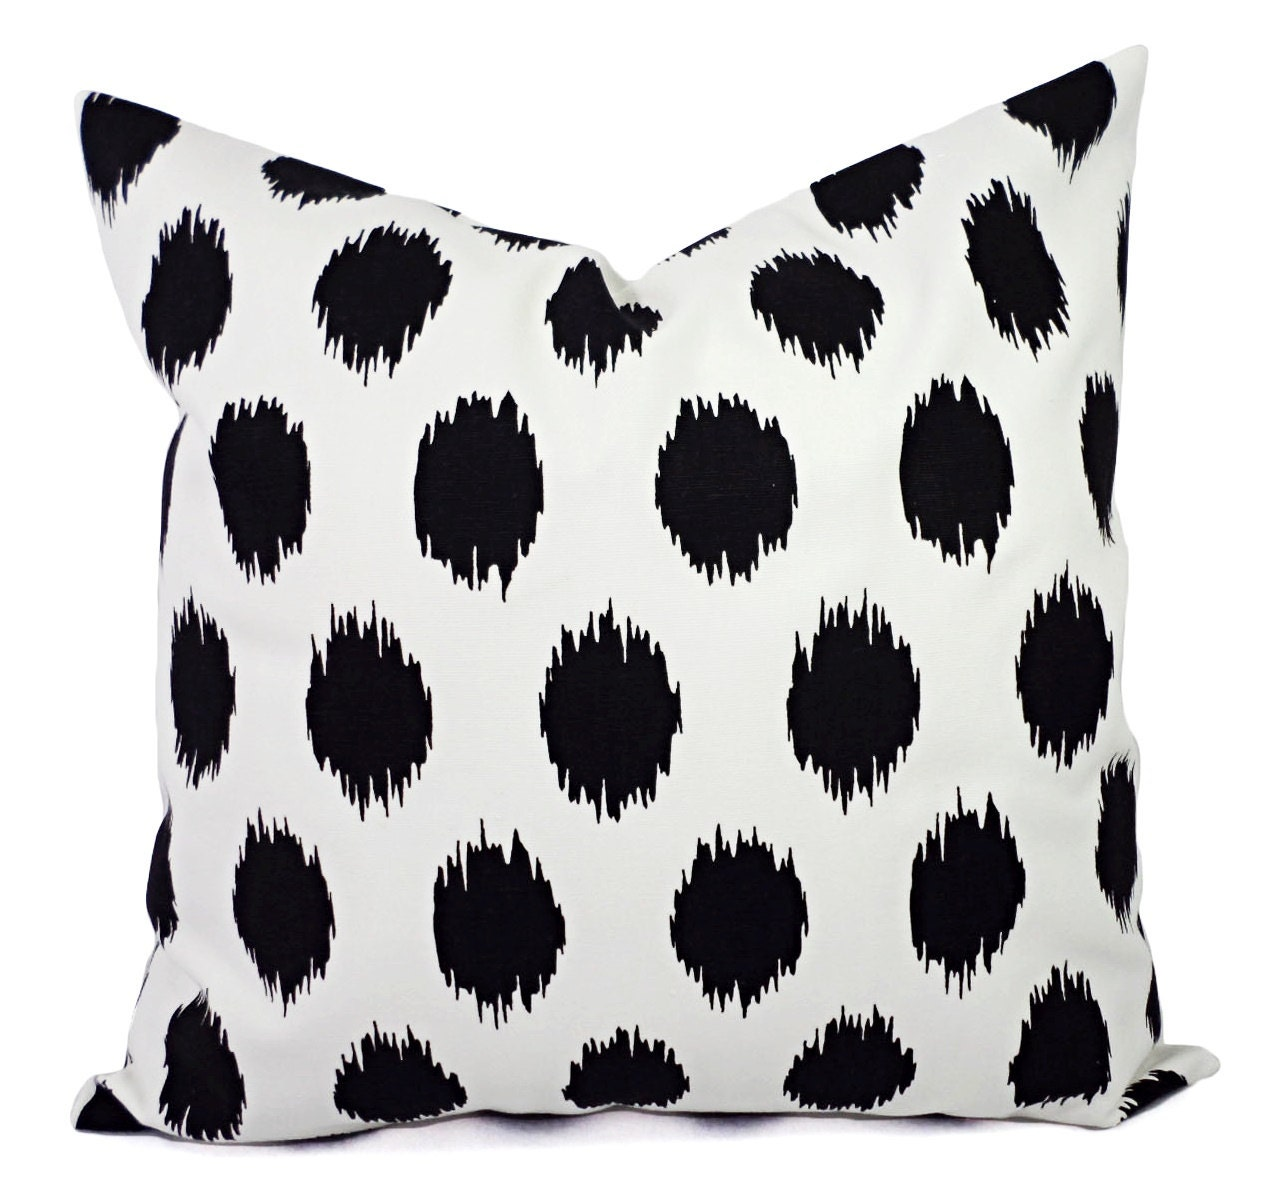 Black White Ikat Pillow Covers Two Black and White Pillows